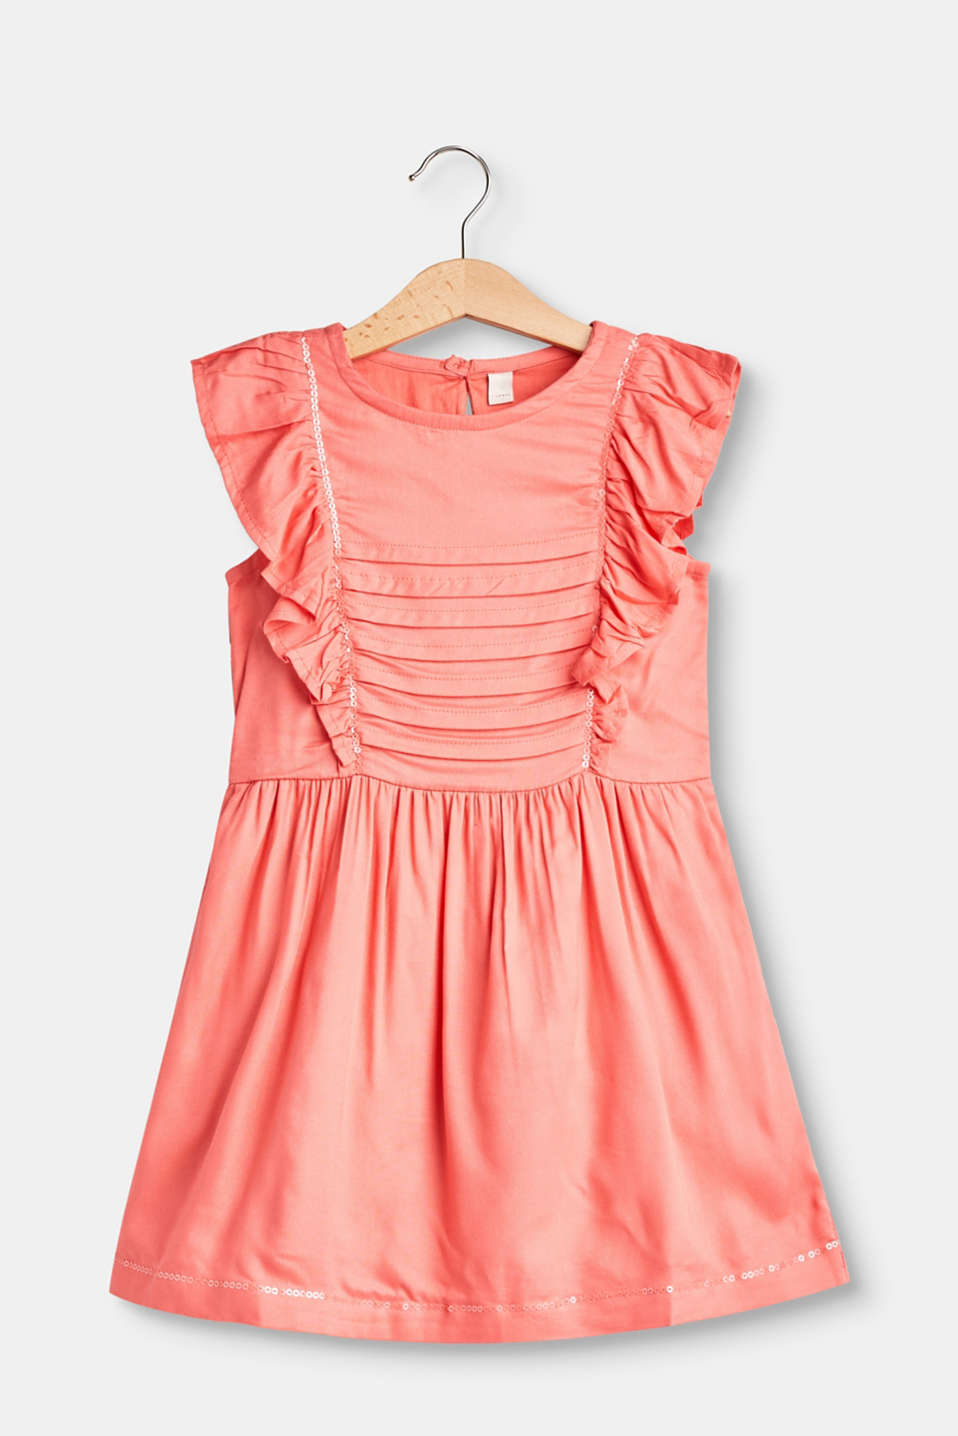 Frills, pin tucks and tonal sequins give this dress made of lightweight fabric its playful charm!